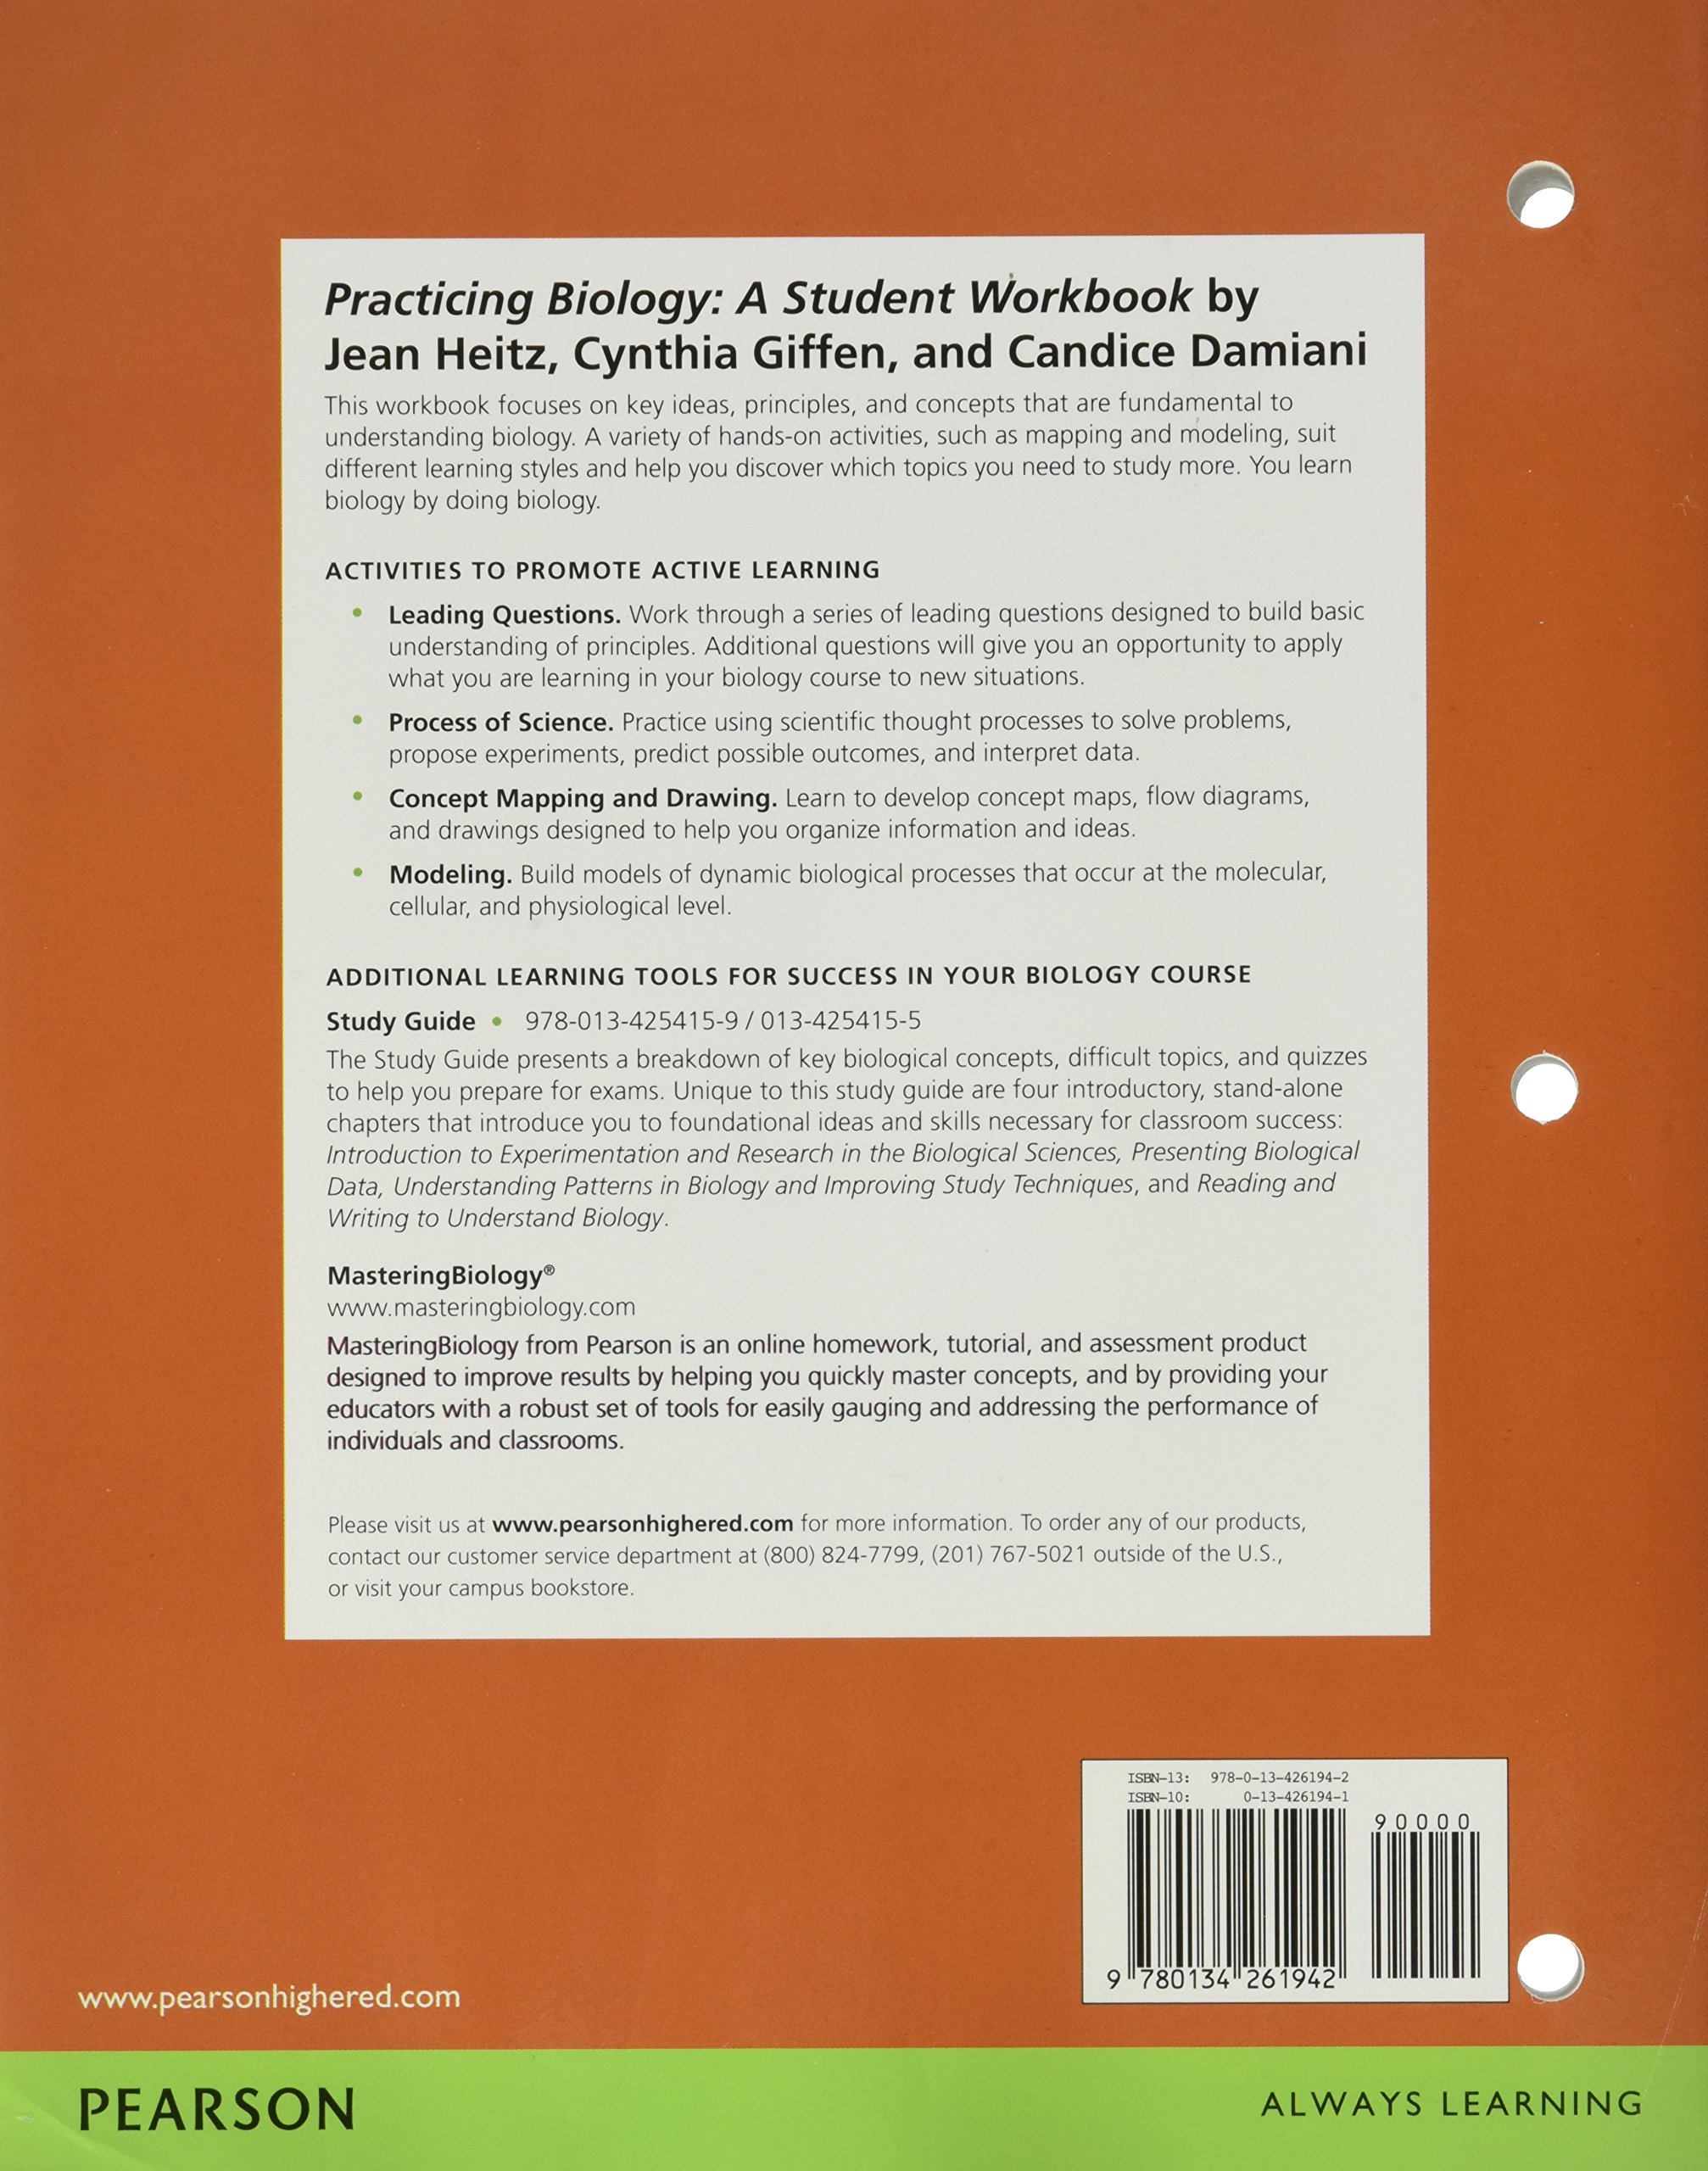 Practicing biology a student workbook for biological science amazon co uk scott freeman kim quillin lizabeth allison michael black greg podgorski